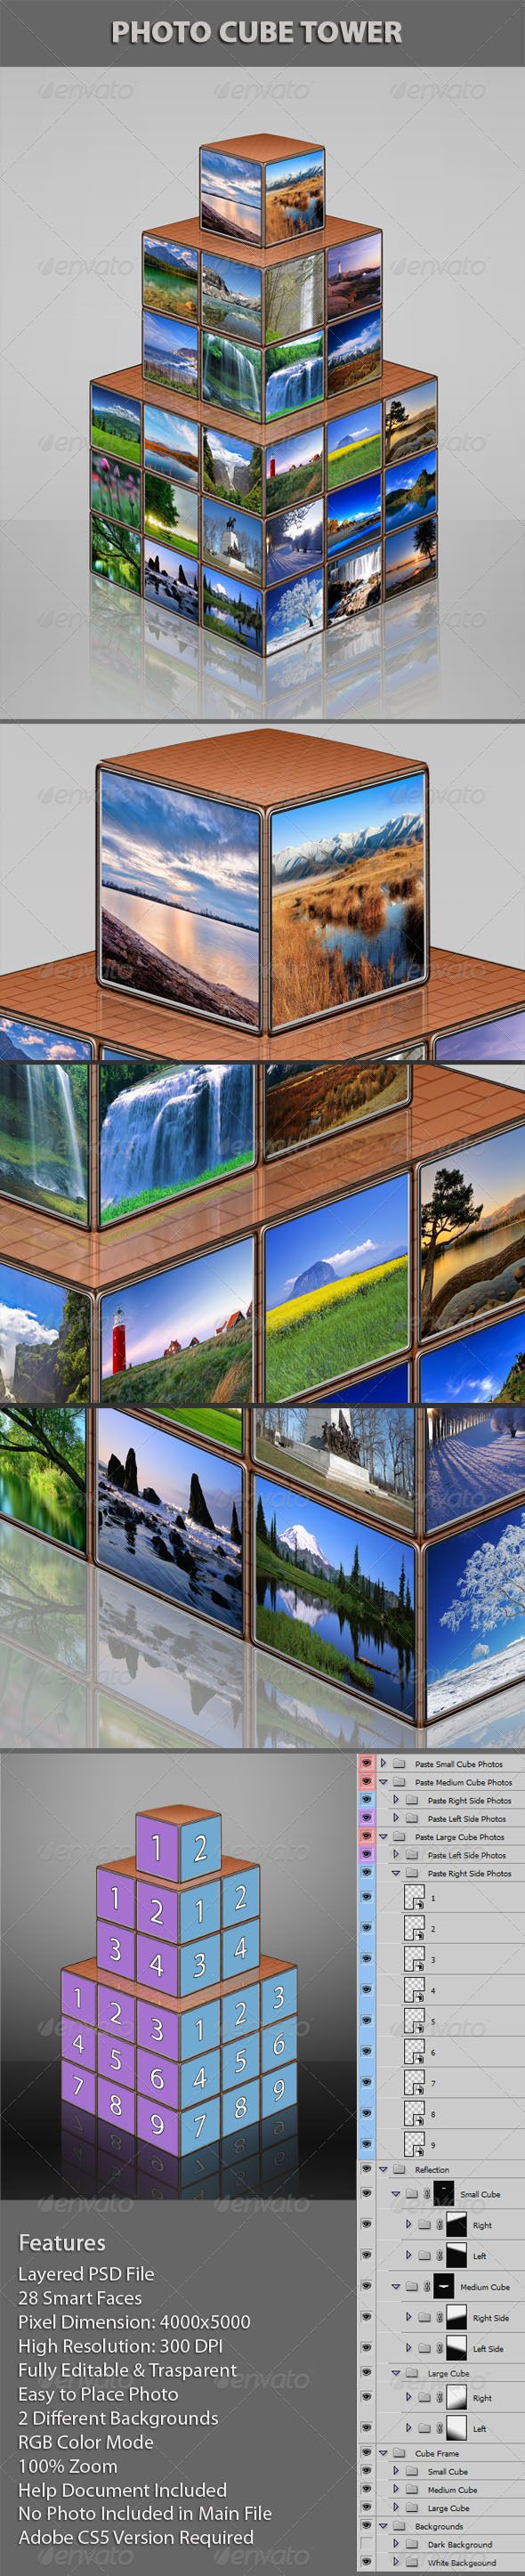 GraphicRiver Photo Cube Tower 5116546